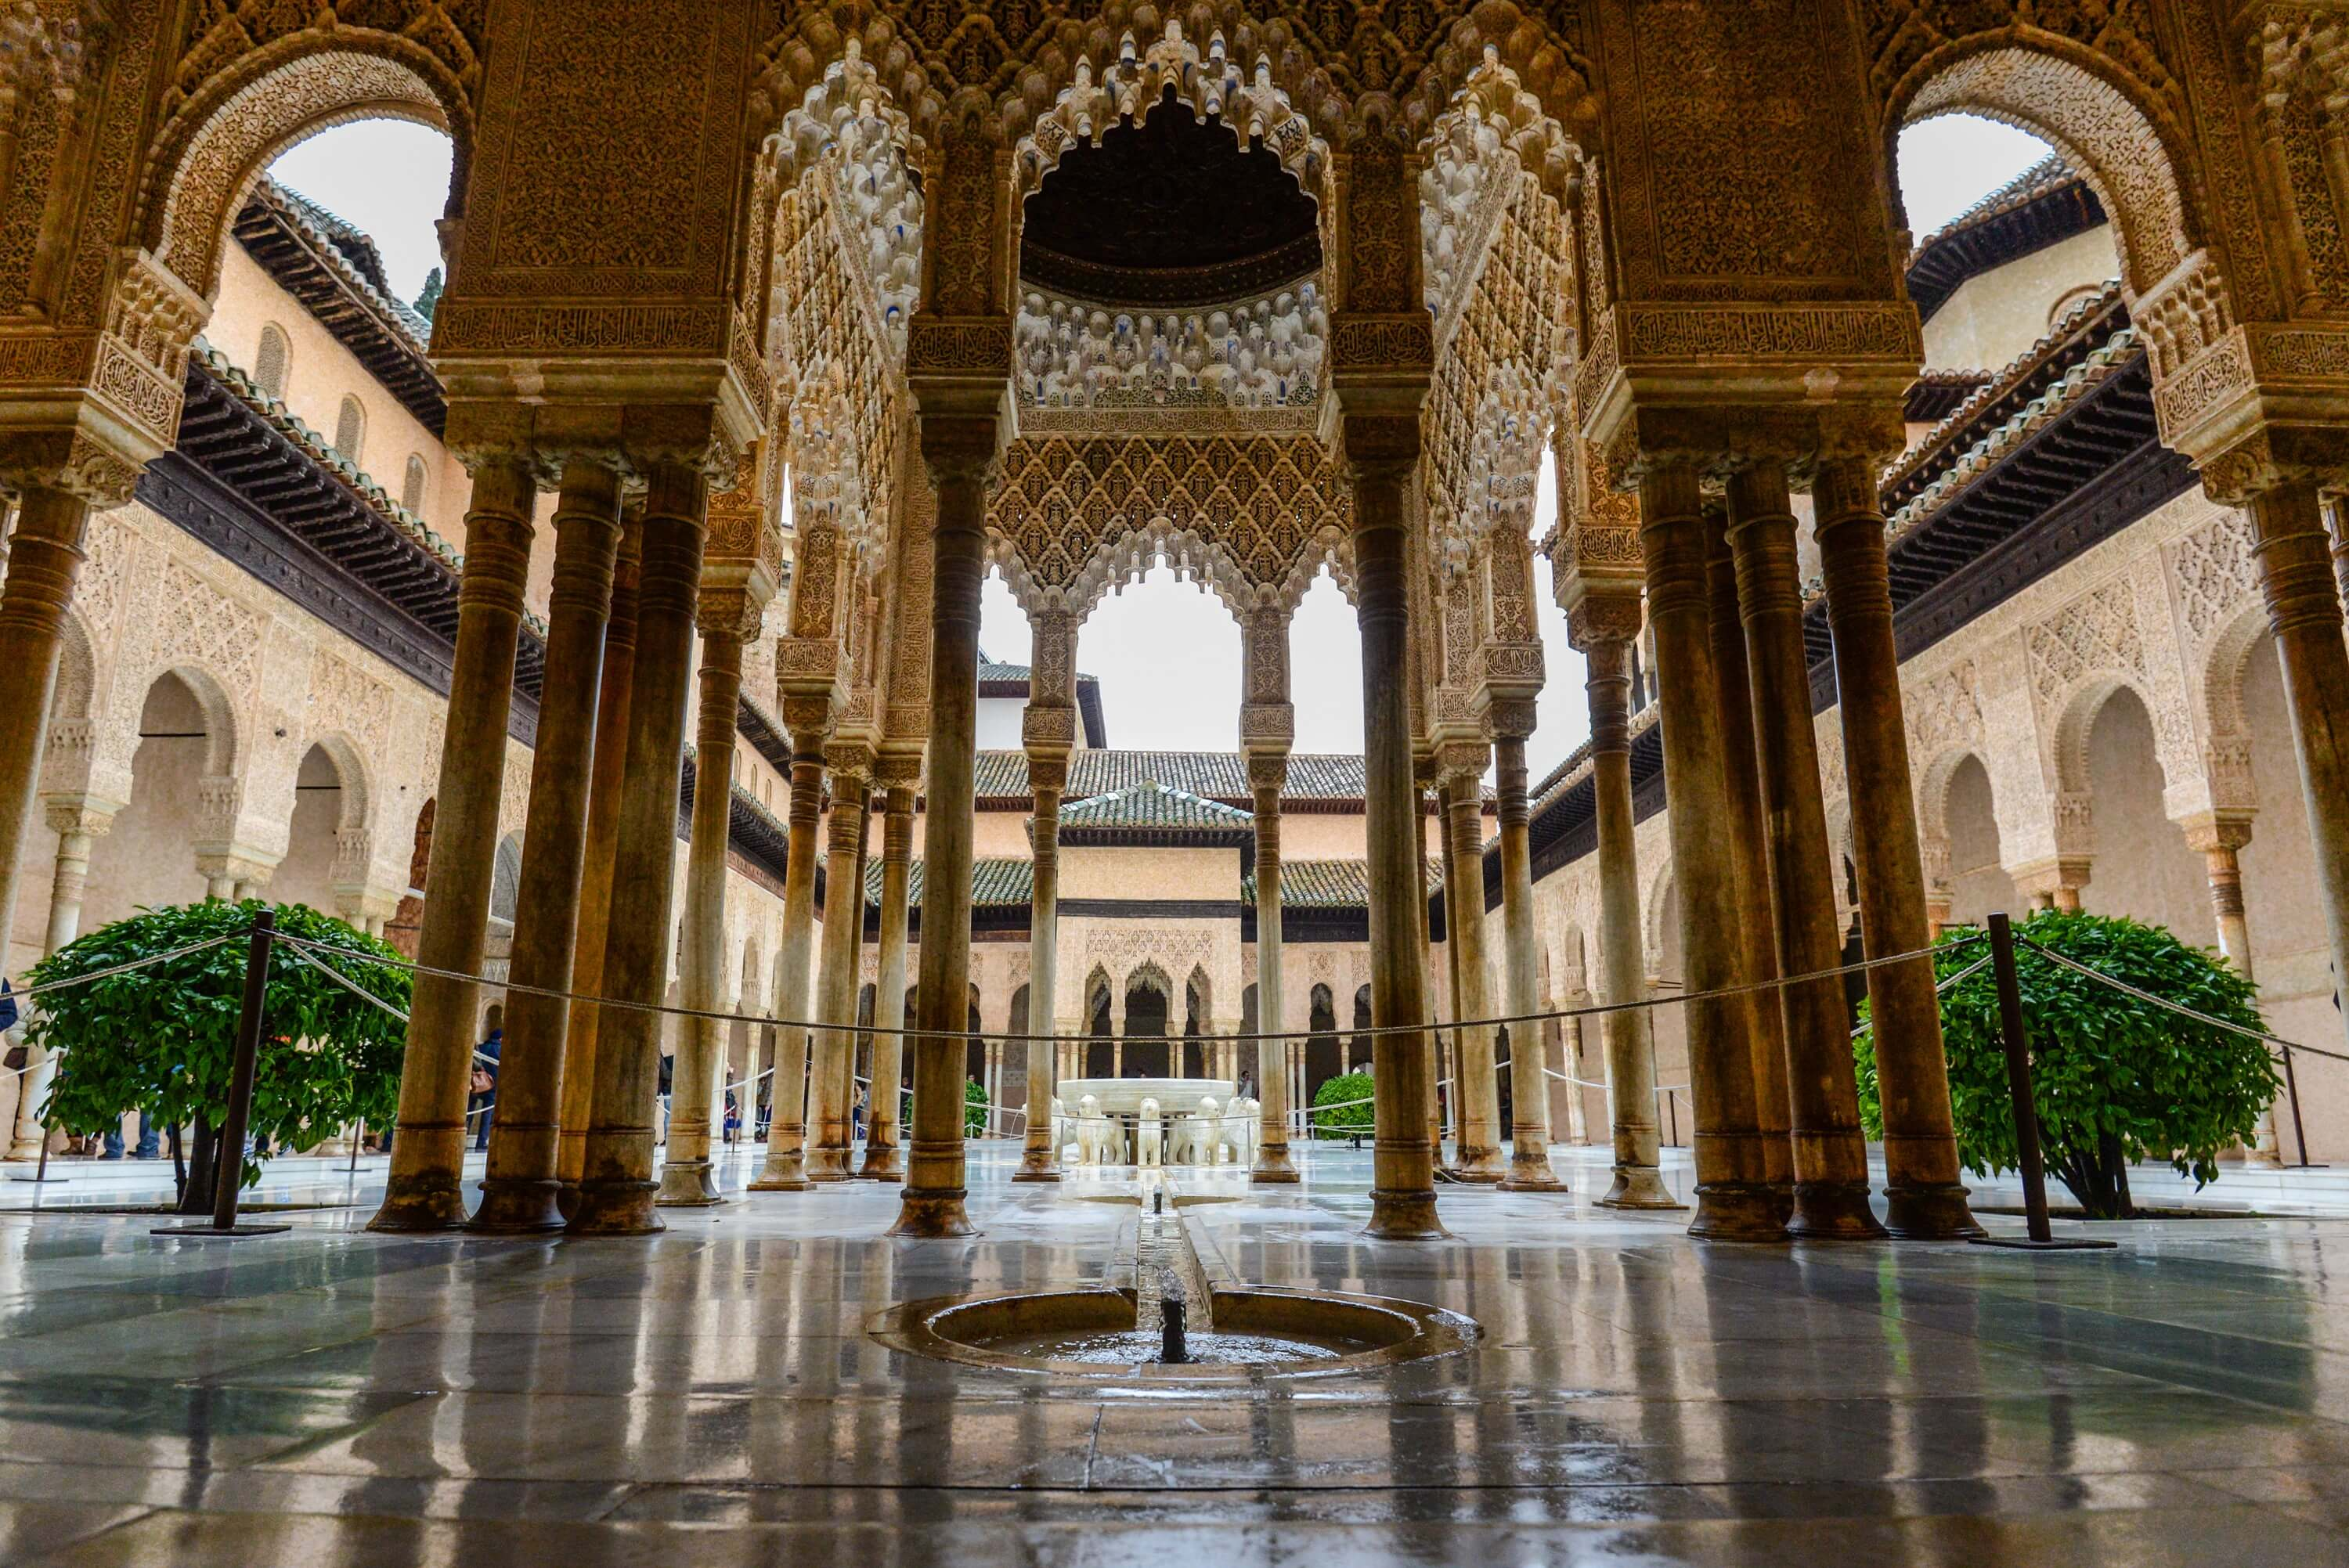 La Alhambra de Granada - 9 Must Have Experiences in Spain